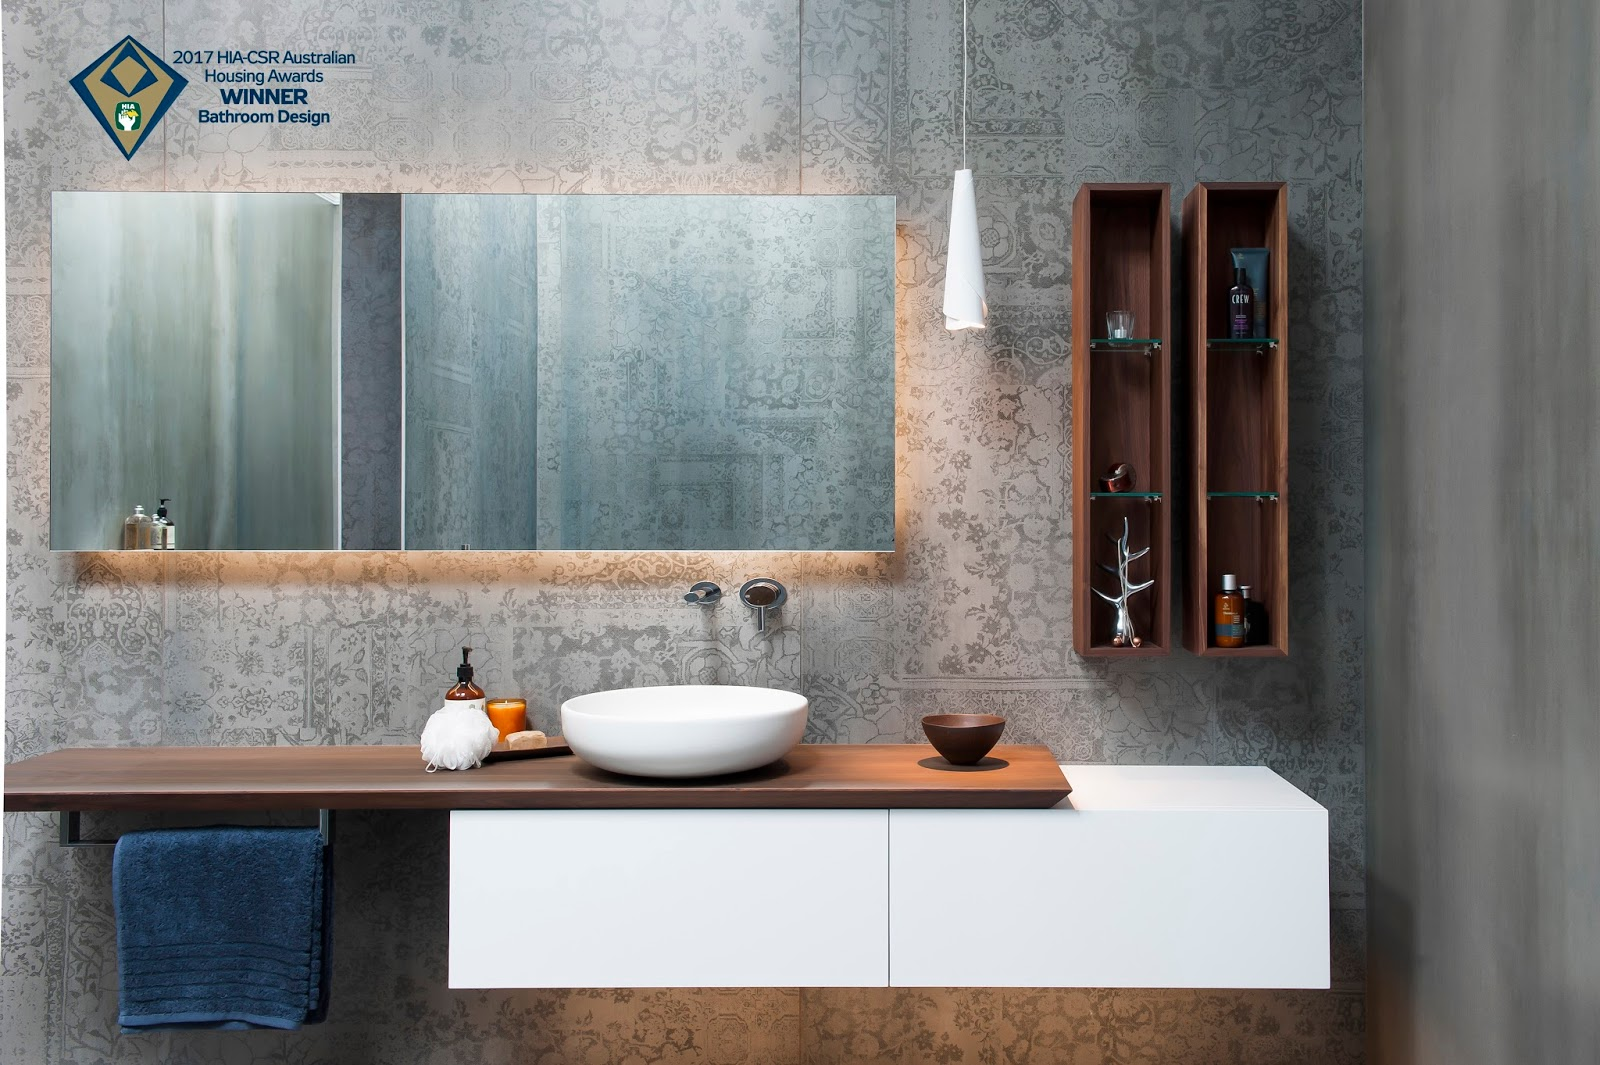 Minosa australian hia bathroom design of the year 2017 for Design own bathroom